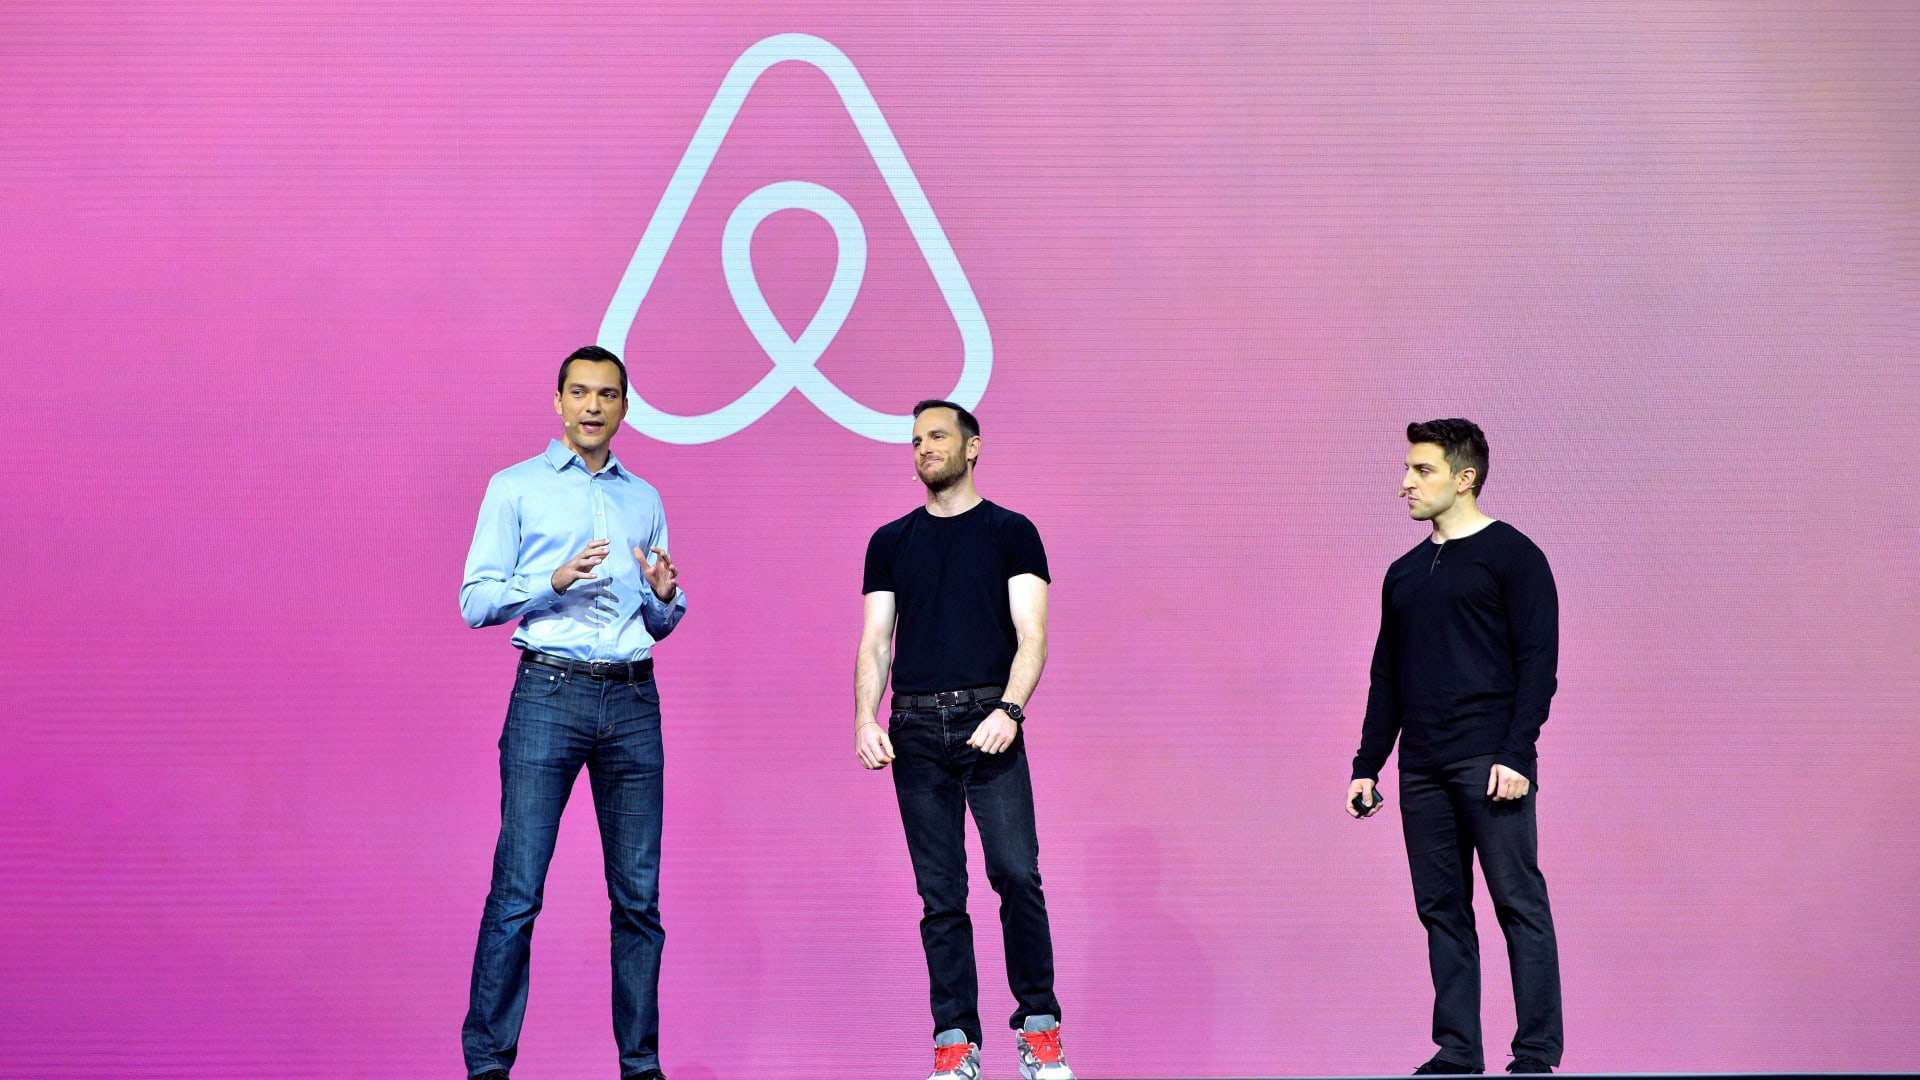 Airbnb founders Nathan Blecharczyk, Joe Gebbia, and Brian Chesky.